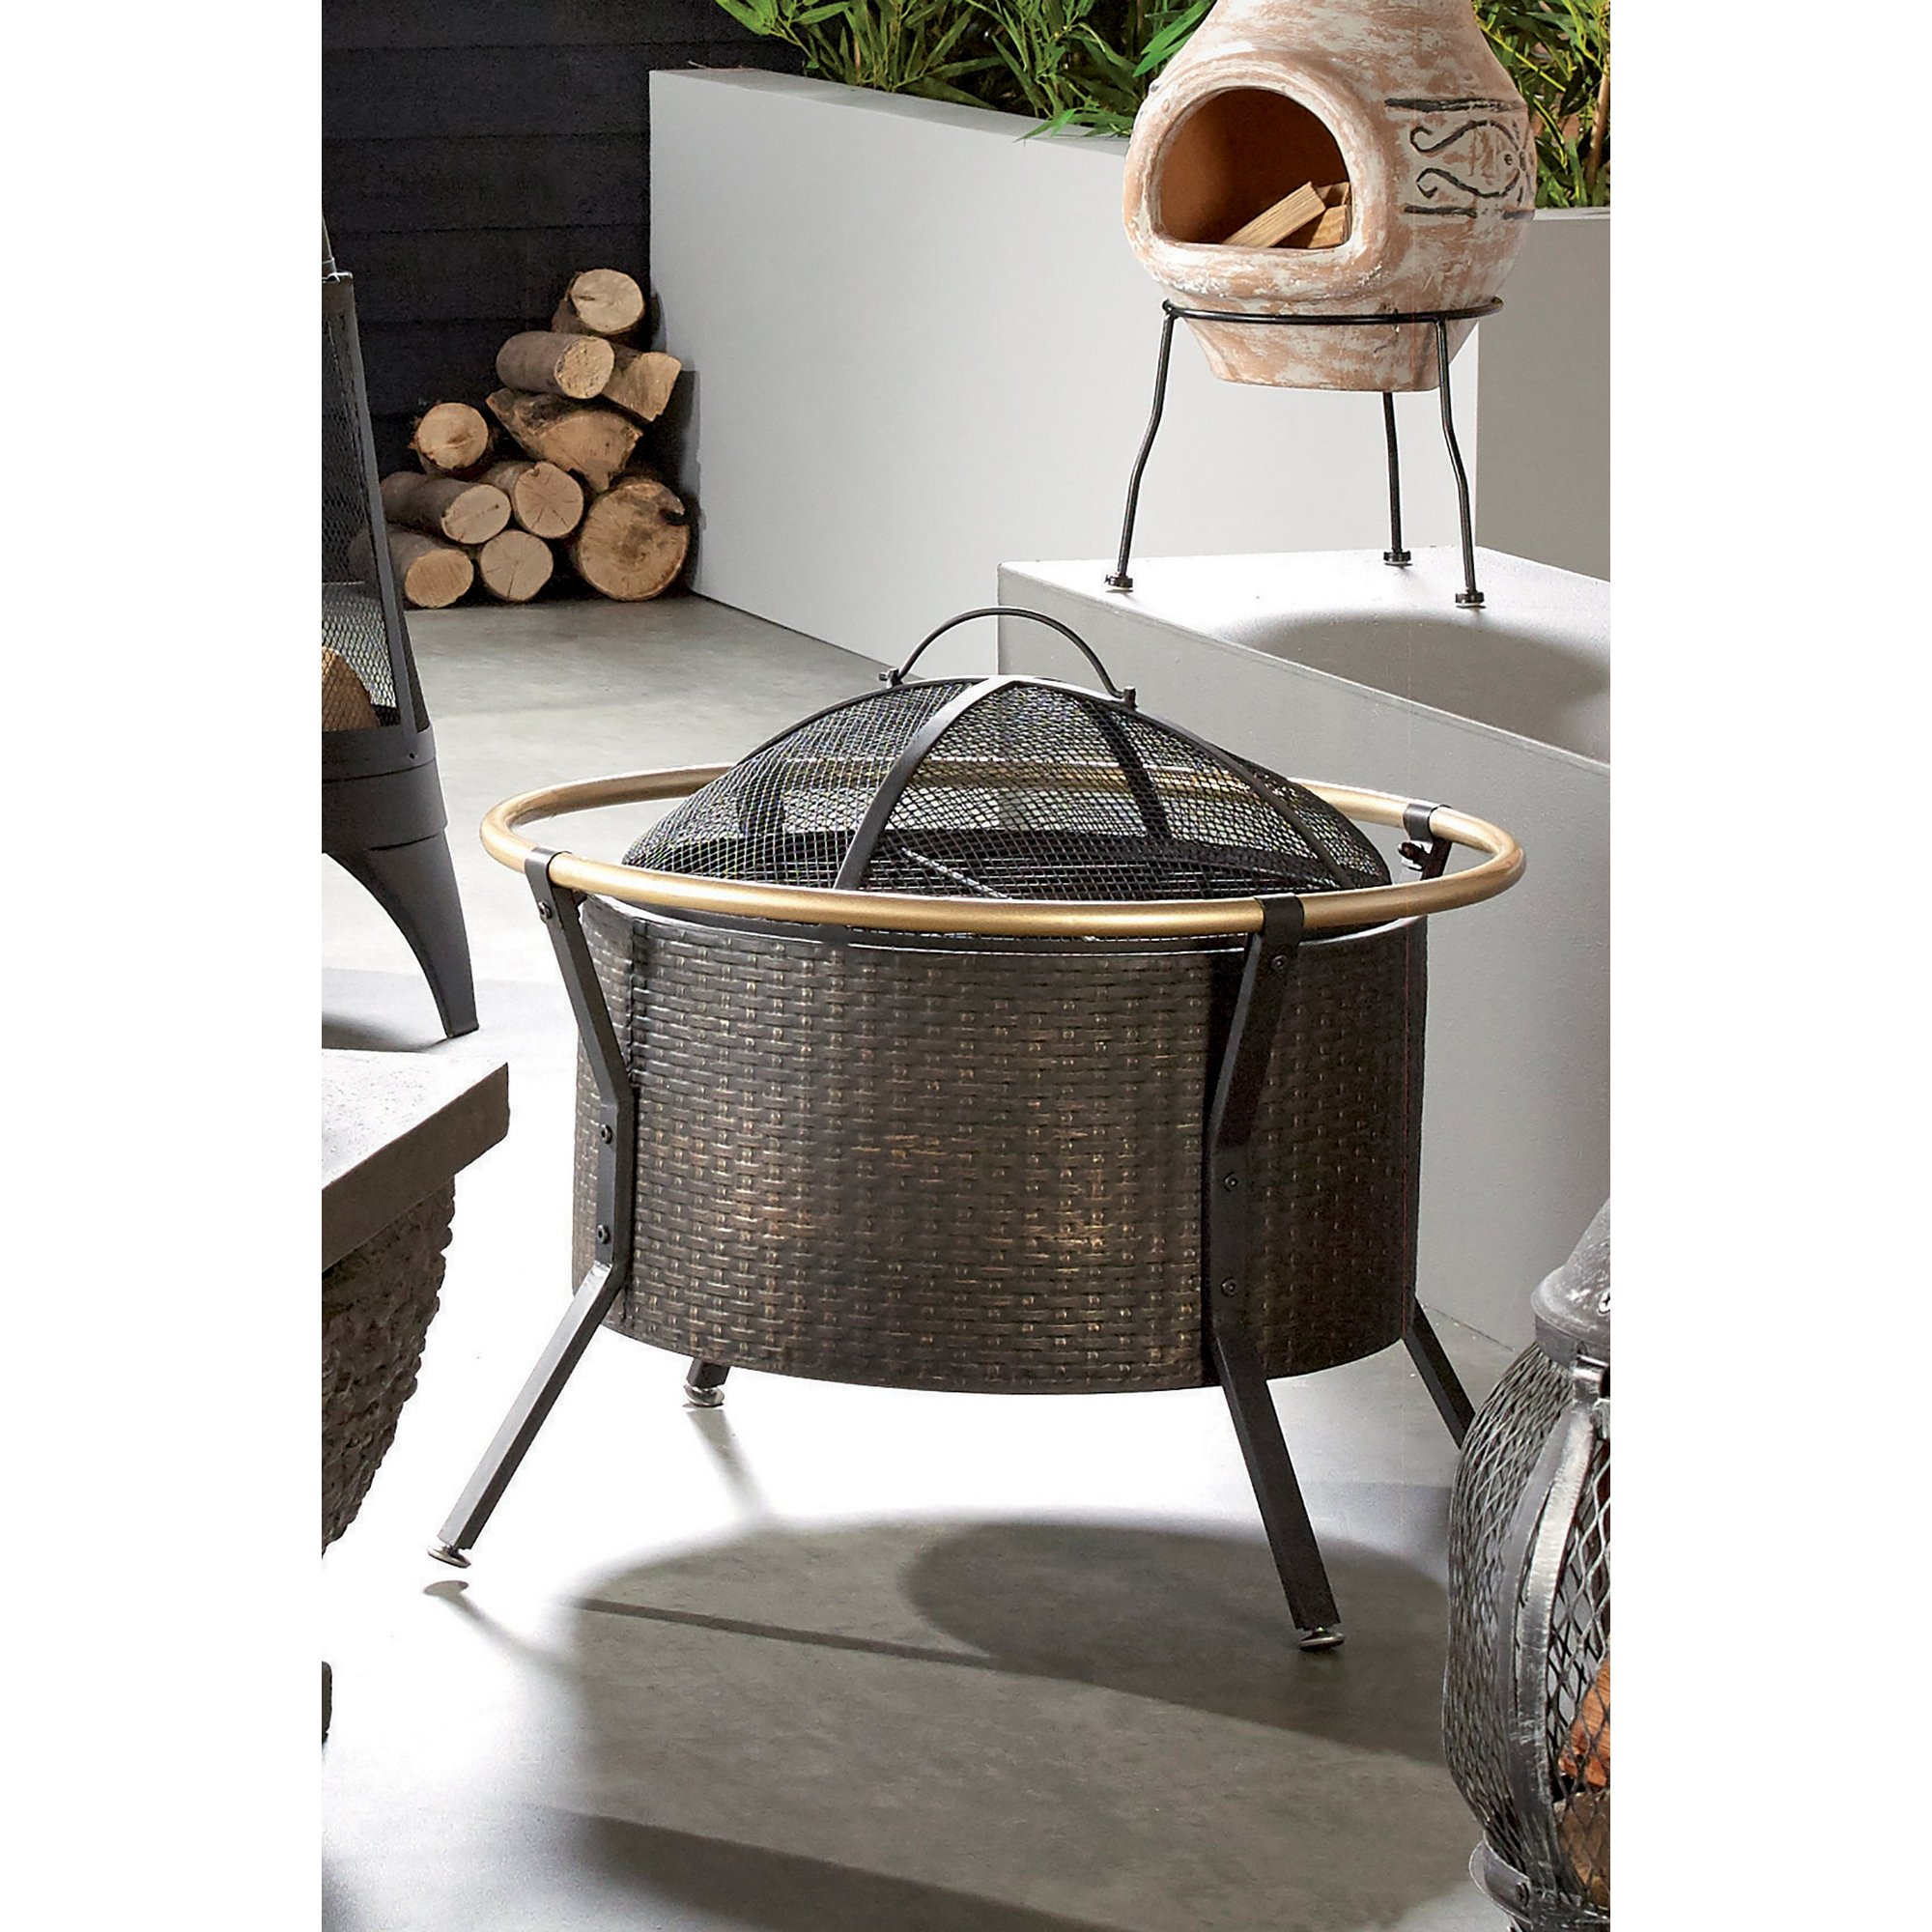 Image of Ember Copper Ring Fire Pit